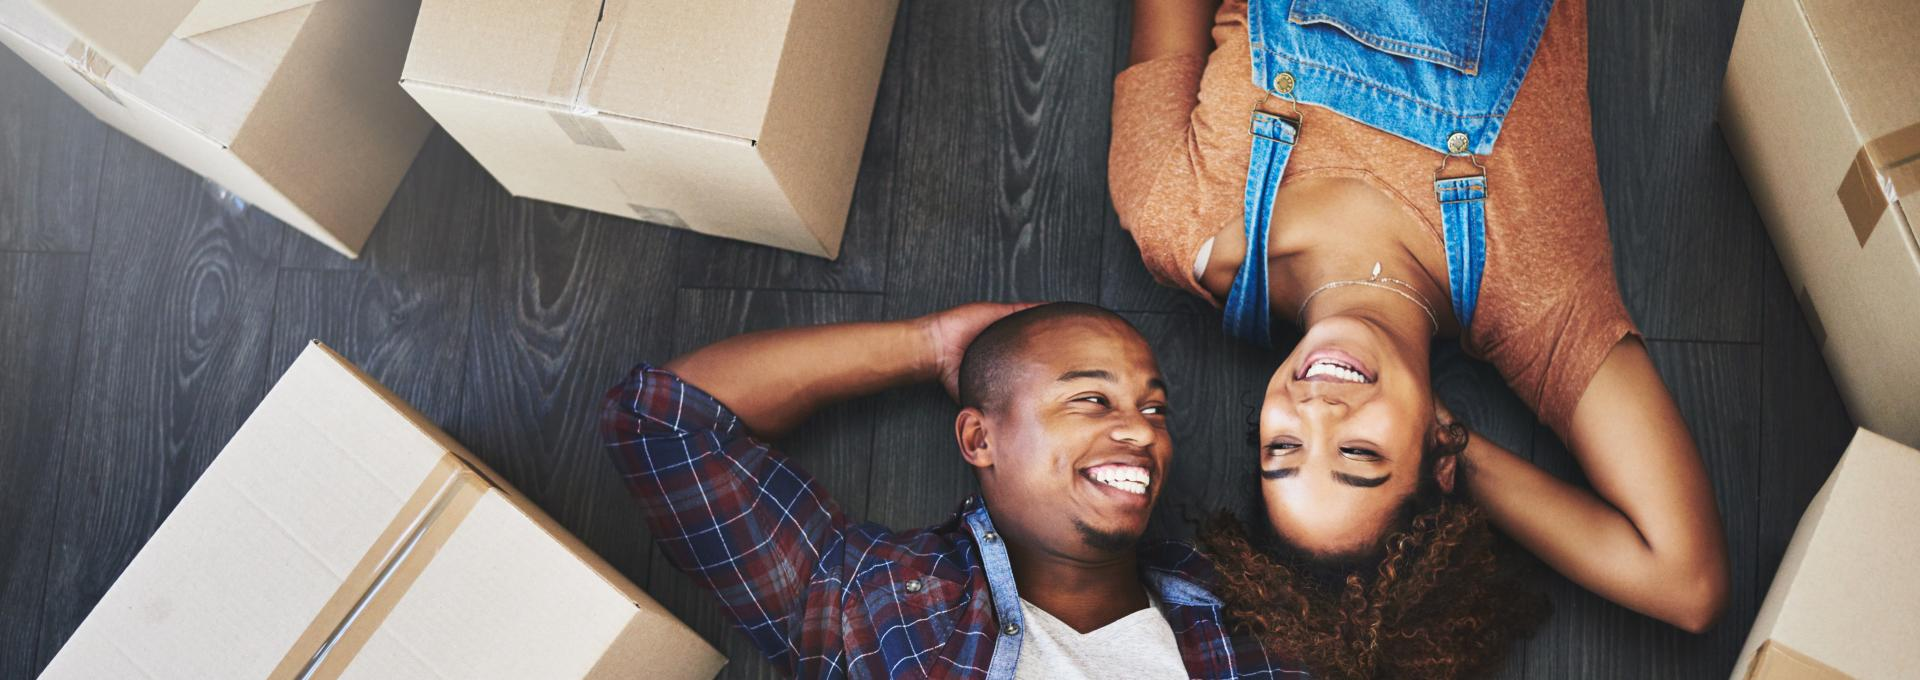 Man and woman laying on floor